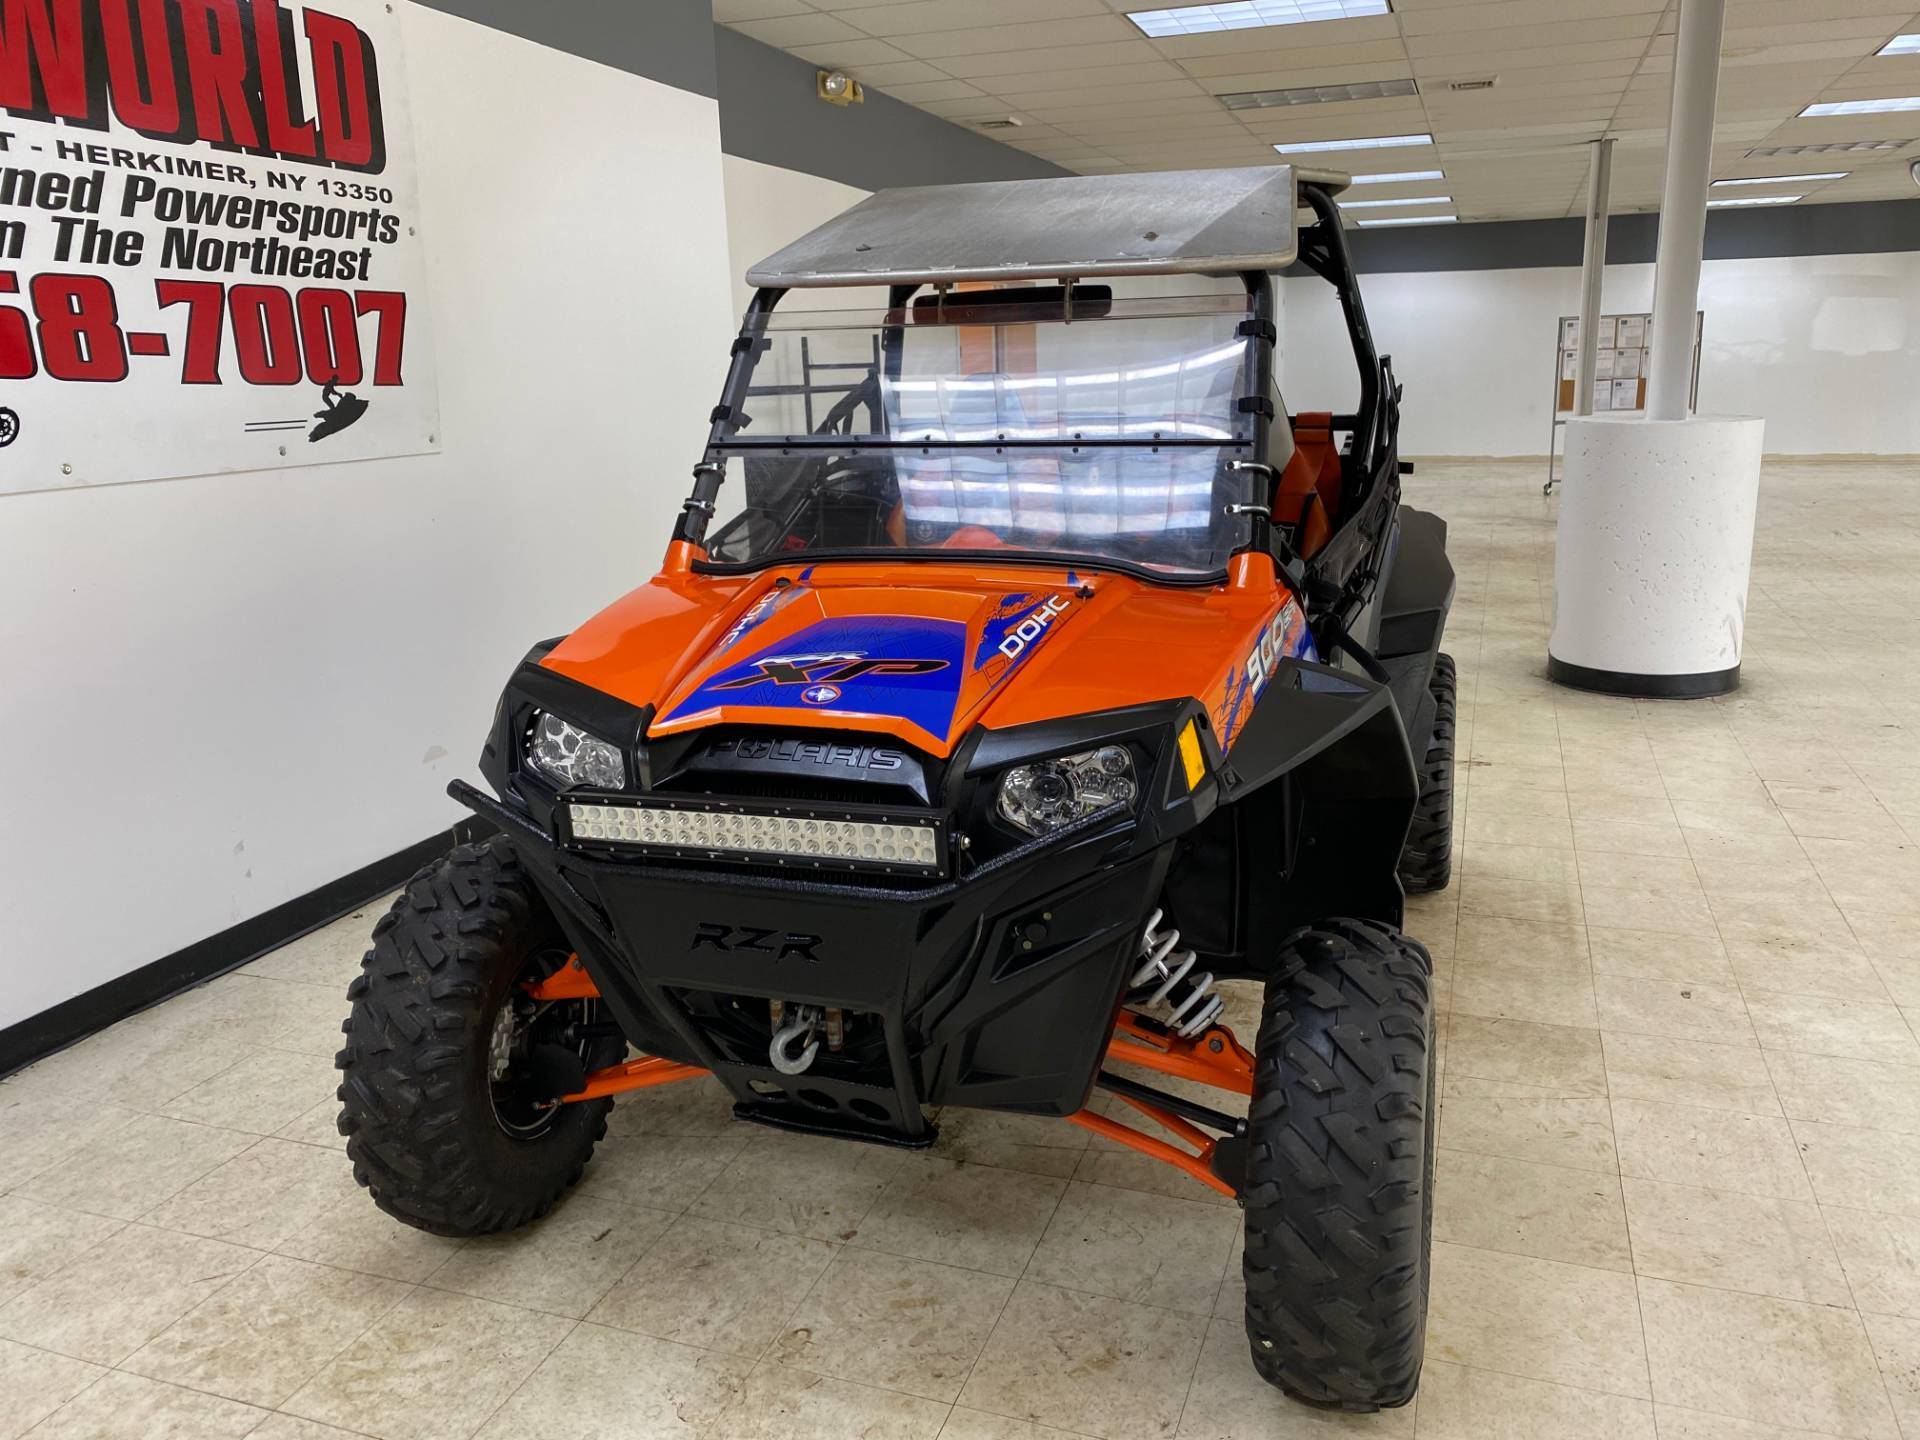 2013 Polaris RZR® XP 900 EPS LE in Herkimer, New York - Photo 5